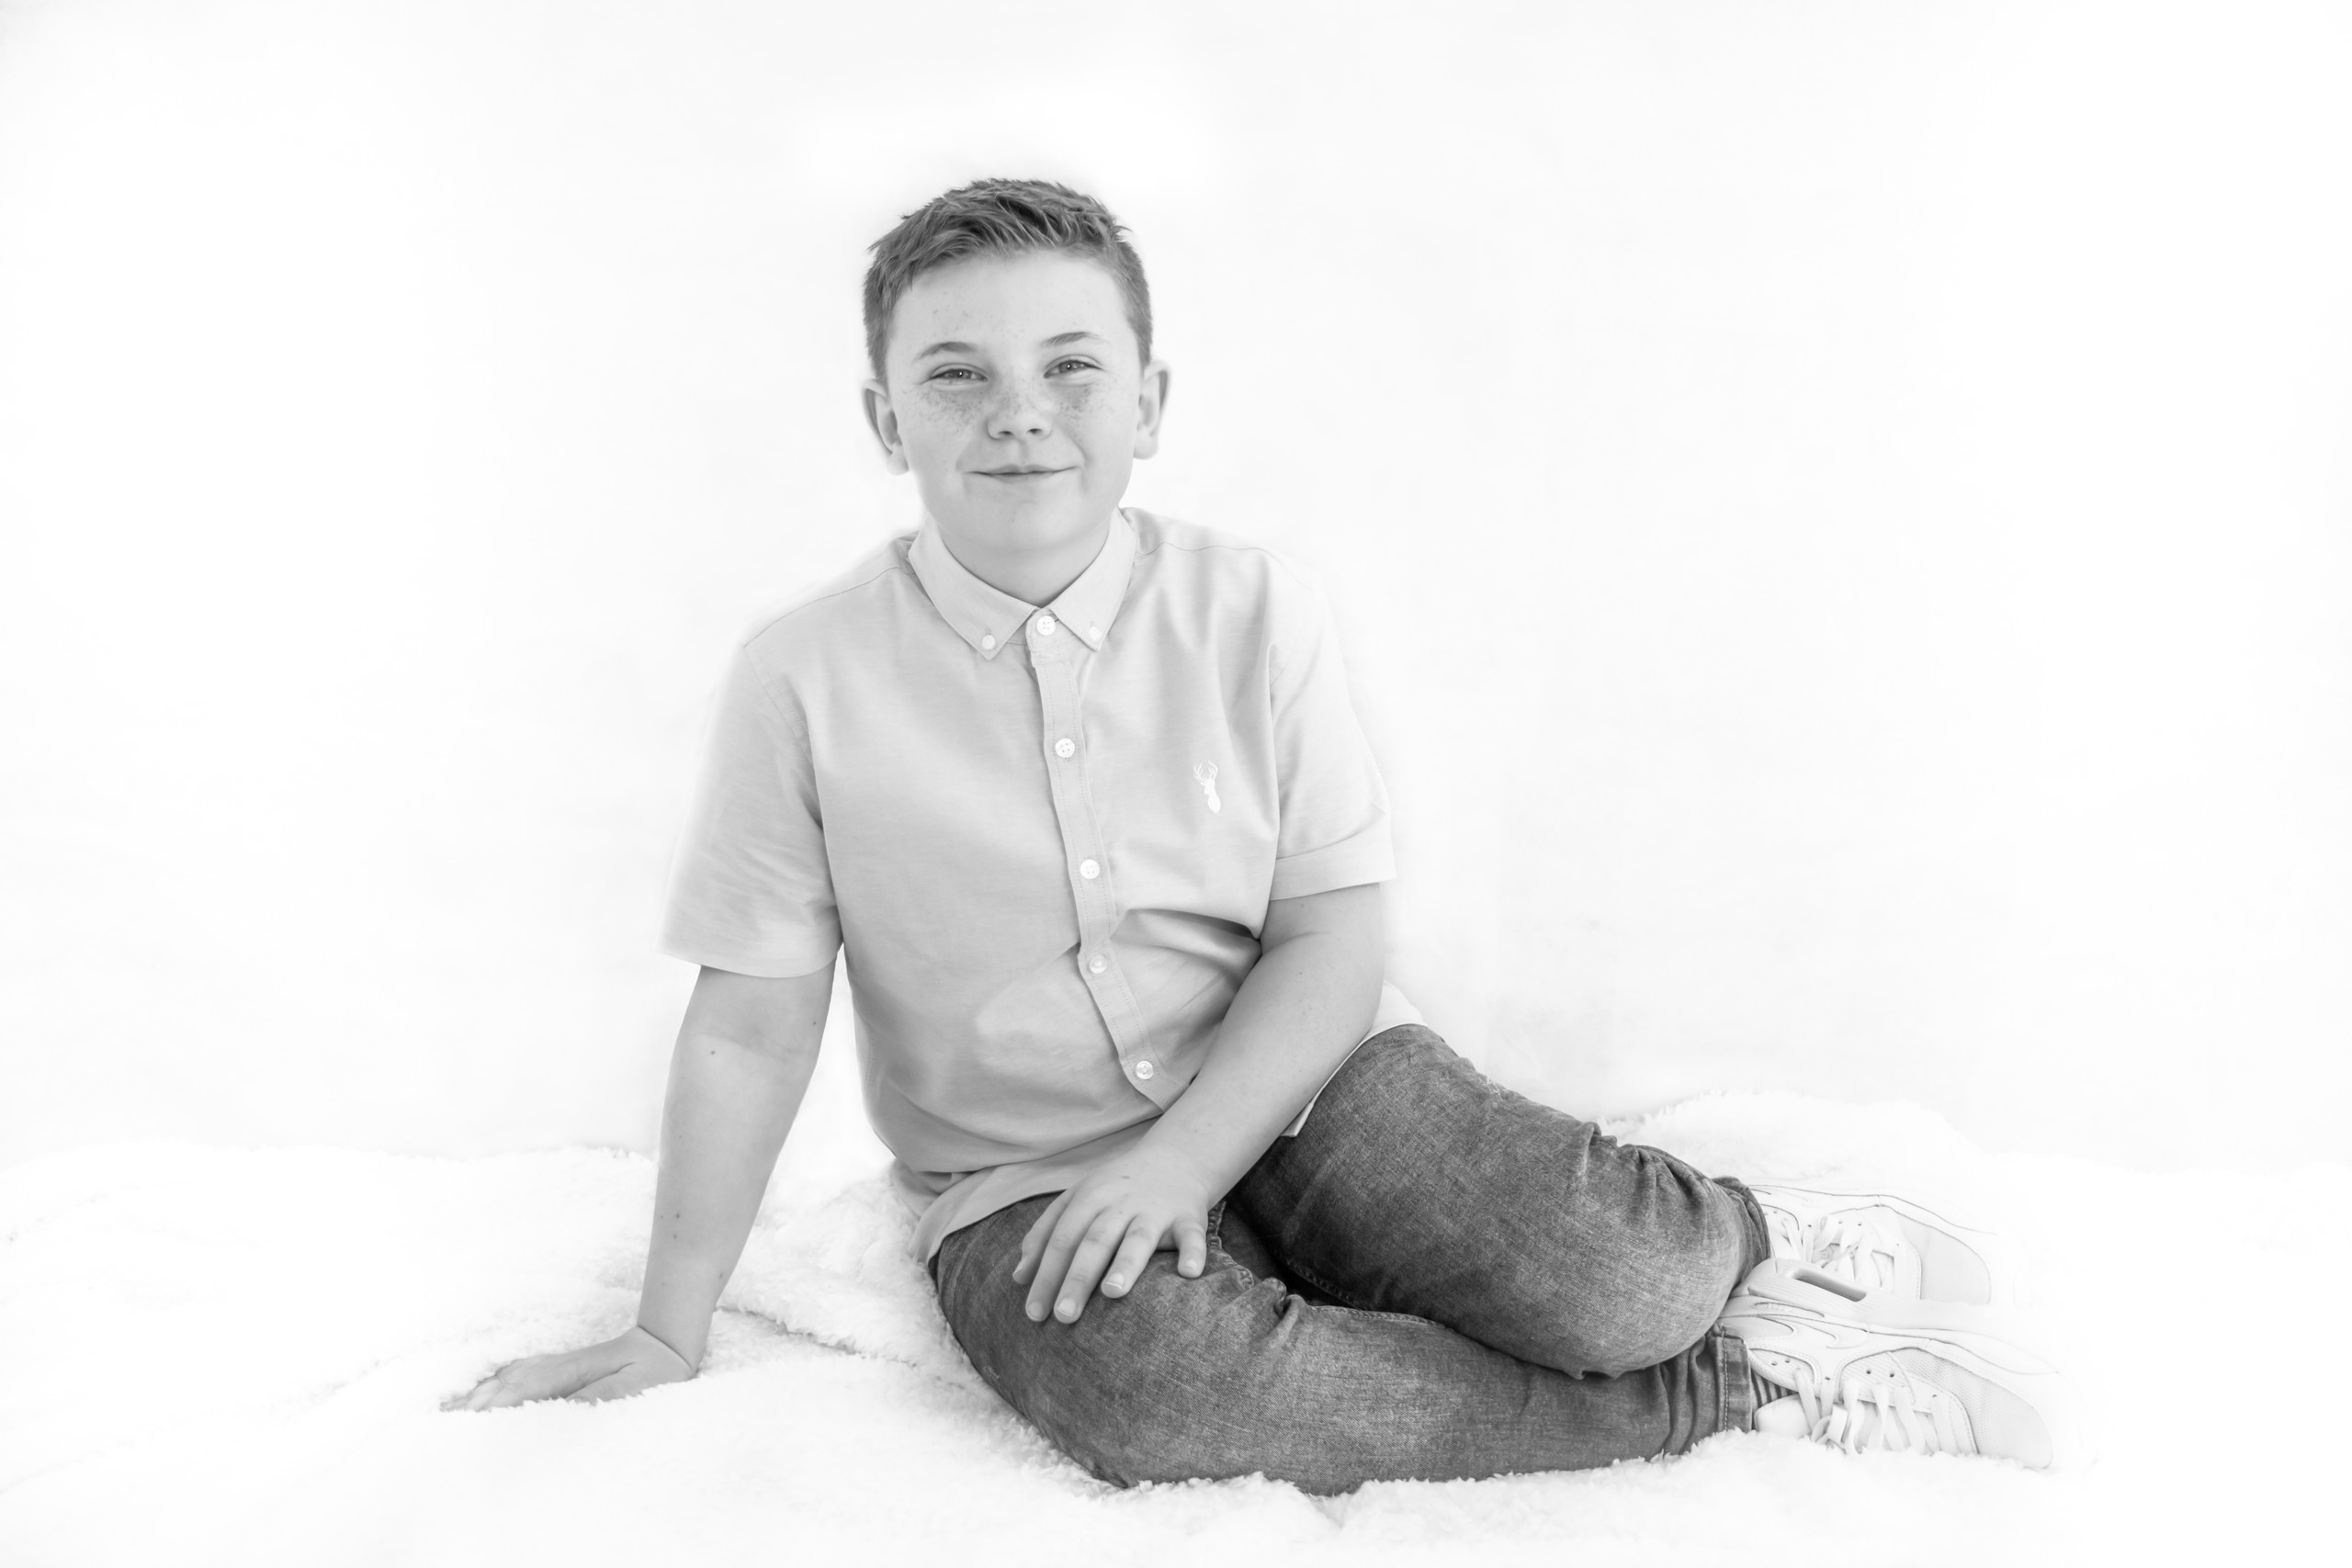 Swansea Head Shot, Family Portrait Black and White Photography. Photographer also covers the Gower, Carmarthenshire, Llanelli and South Wales for Babies, Children and Pets